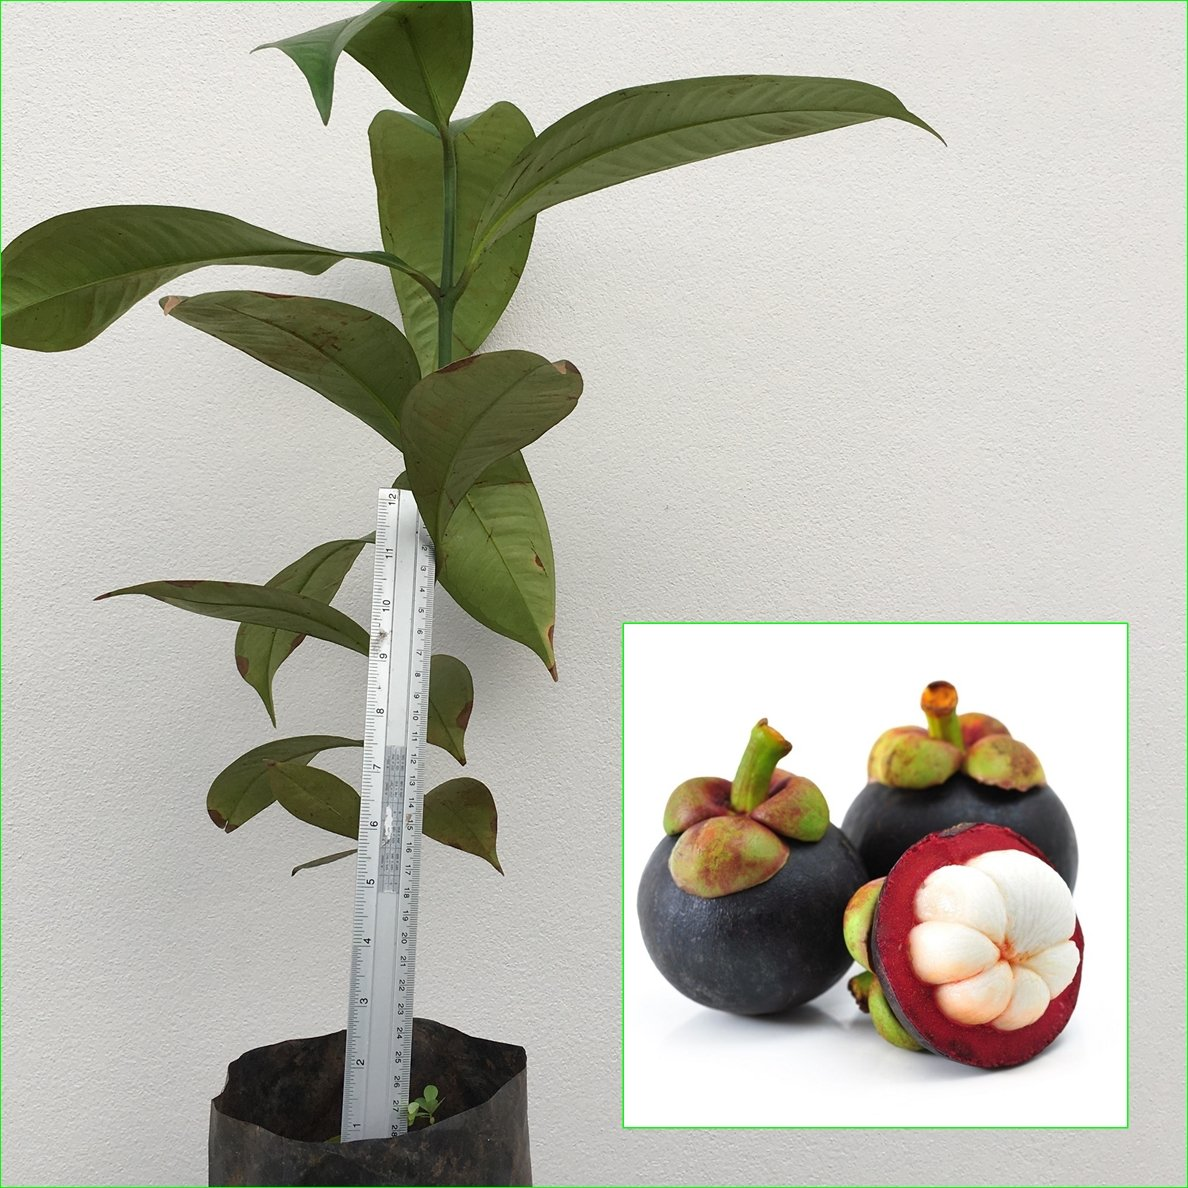 1 Mangosteen Tree Tropical Plant 20'' Tall Garcinia mangostana Queen of fruit Direct from Thailand Free Phytosanitary Cert.